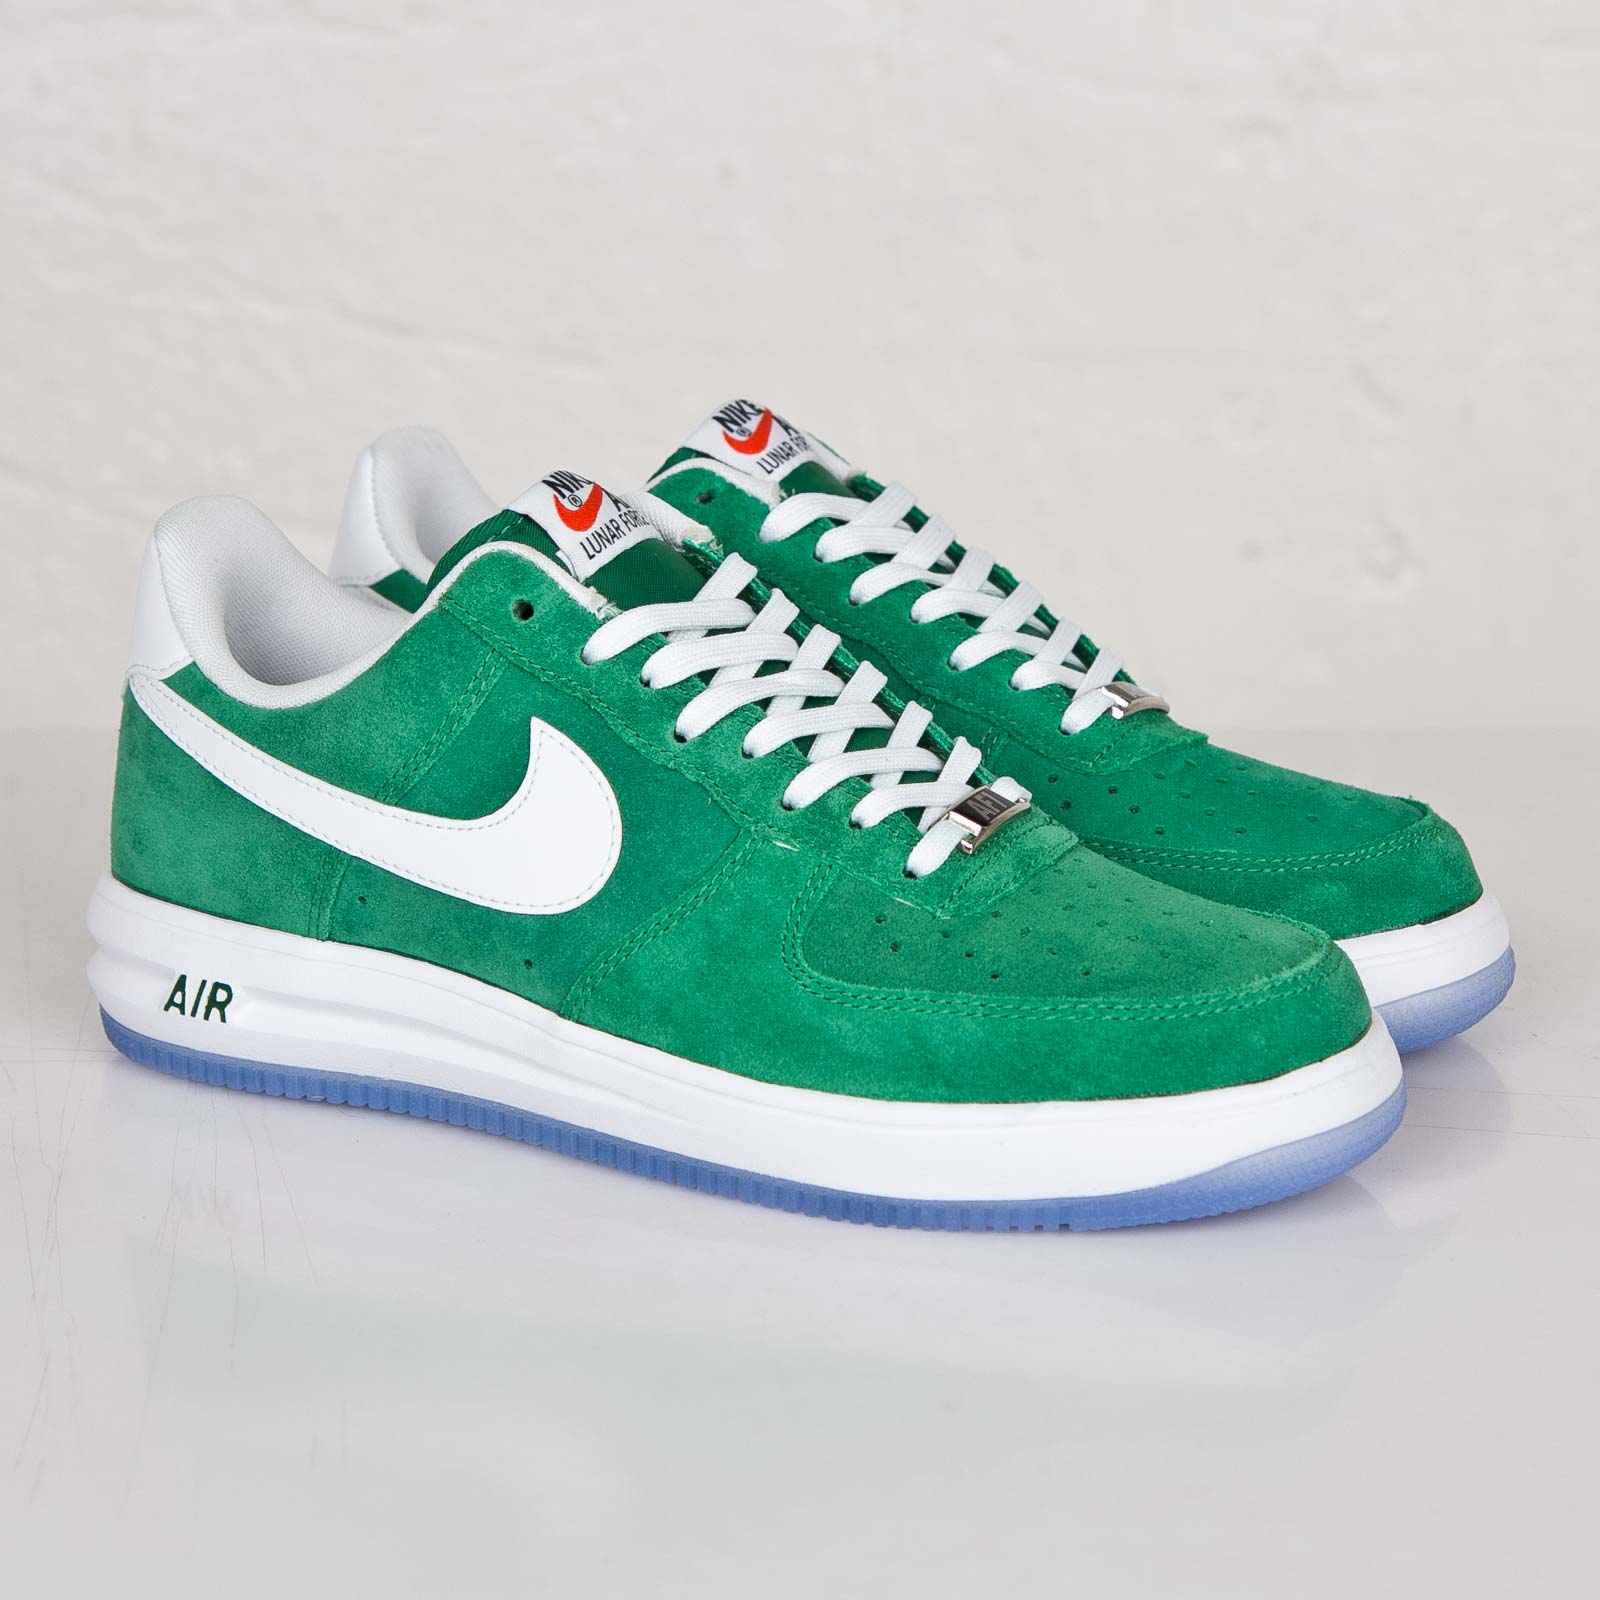 99fb1803163c Nike Lunar Force 1 14 - 654256-300 - Sneakersnstuff